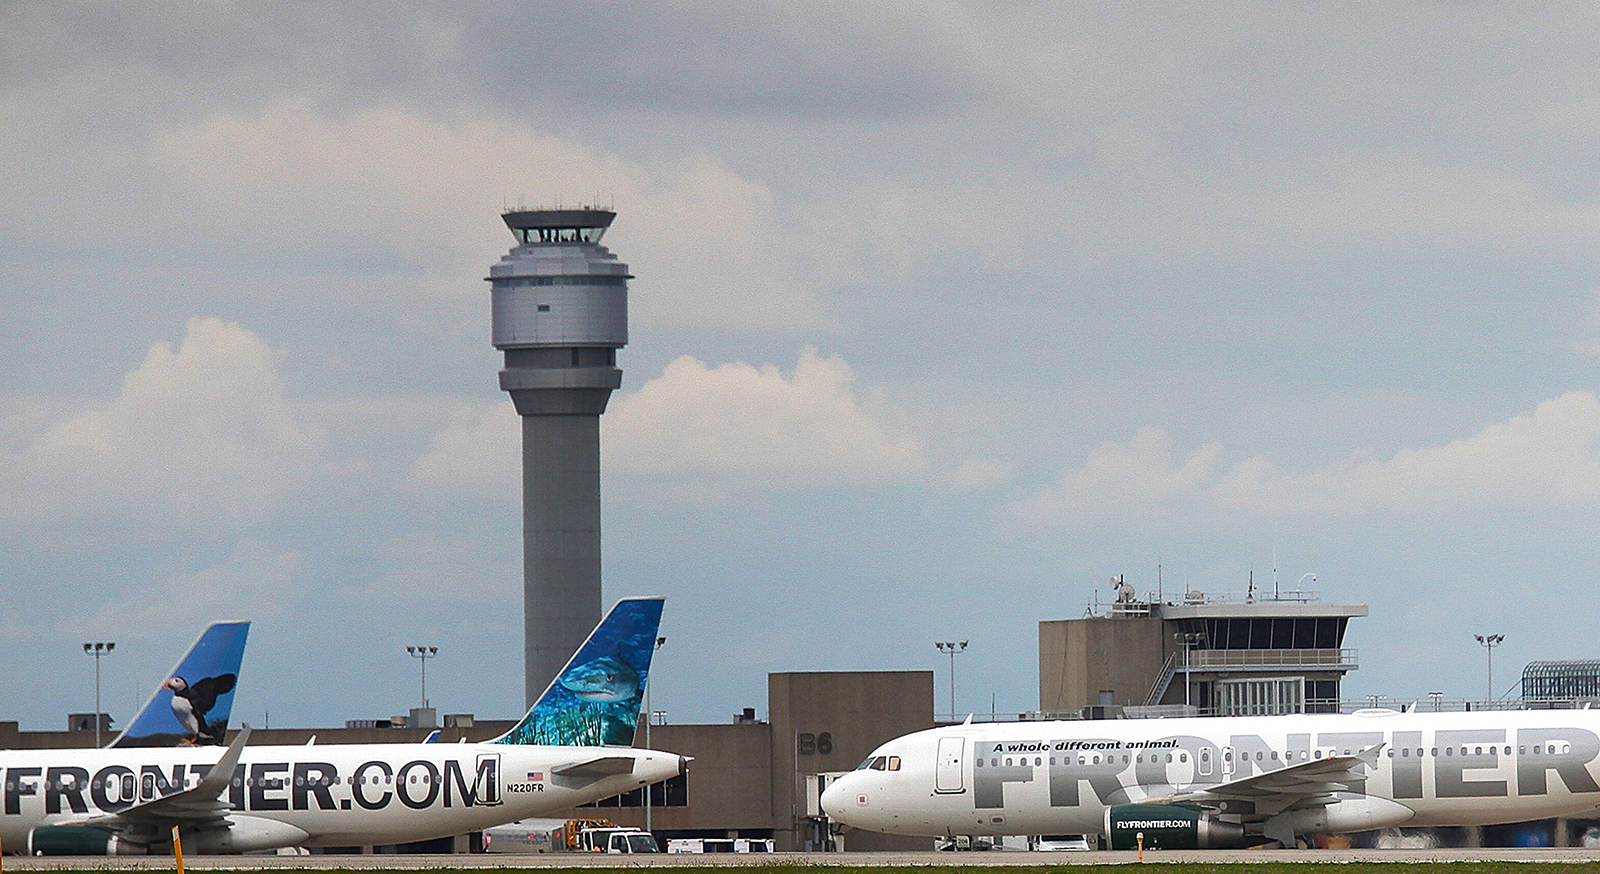 A Frontier Airlines plane taxis the runway at Cleveland Hopkins Airport on October 15, 2014 in Cleveland, Ohio.